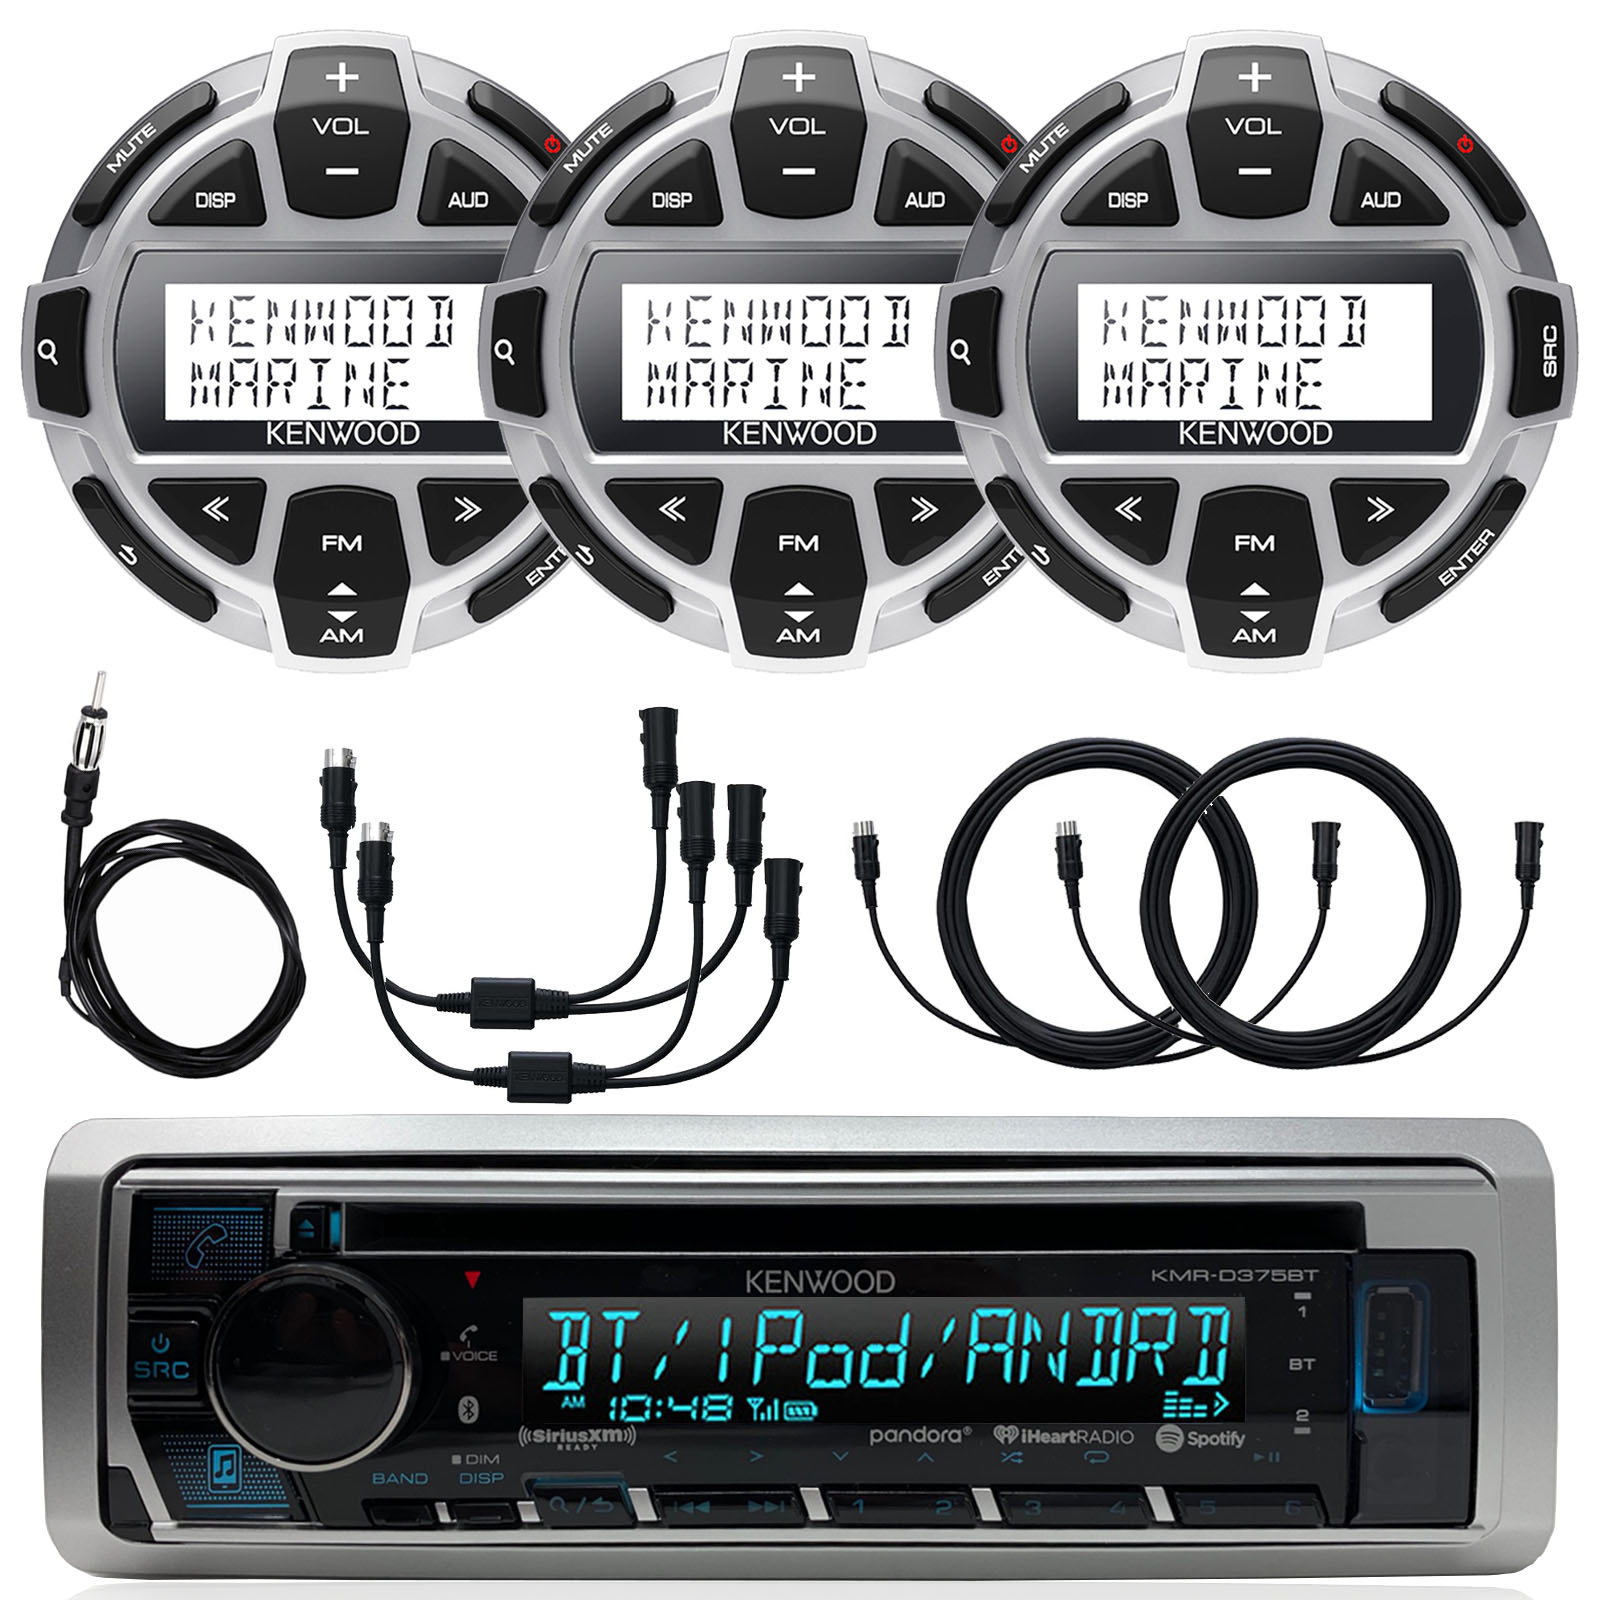 """Kenwood Marine Motorsports Boat Yacht In-Dash Single DIN CD Bluetooth UBS AUX Receiver, 3x Kenwood Digital LCD Display Wired Remote, 40"""" AM/FM Antenna, 2x Y-Cable Adapter, 3x 7-Meter - 22 Ft Extension"""